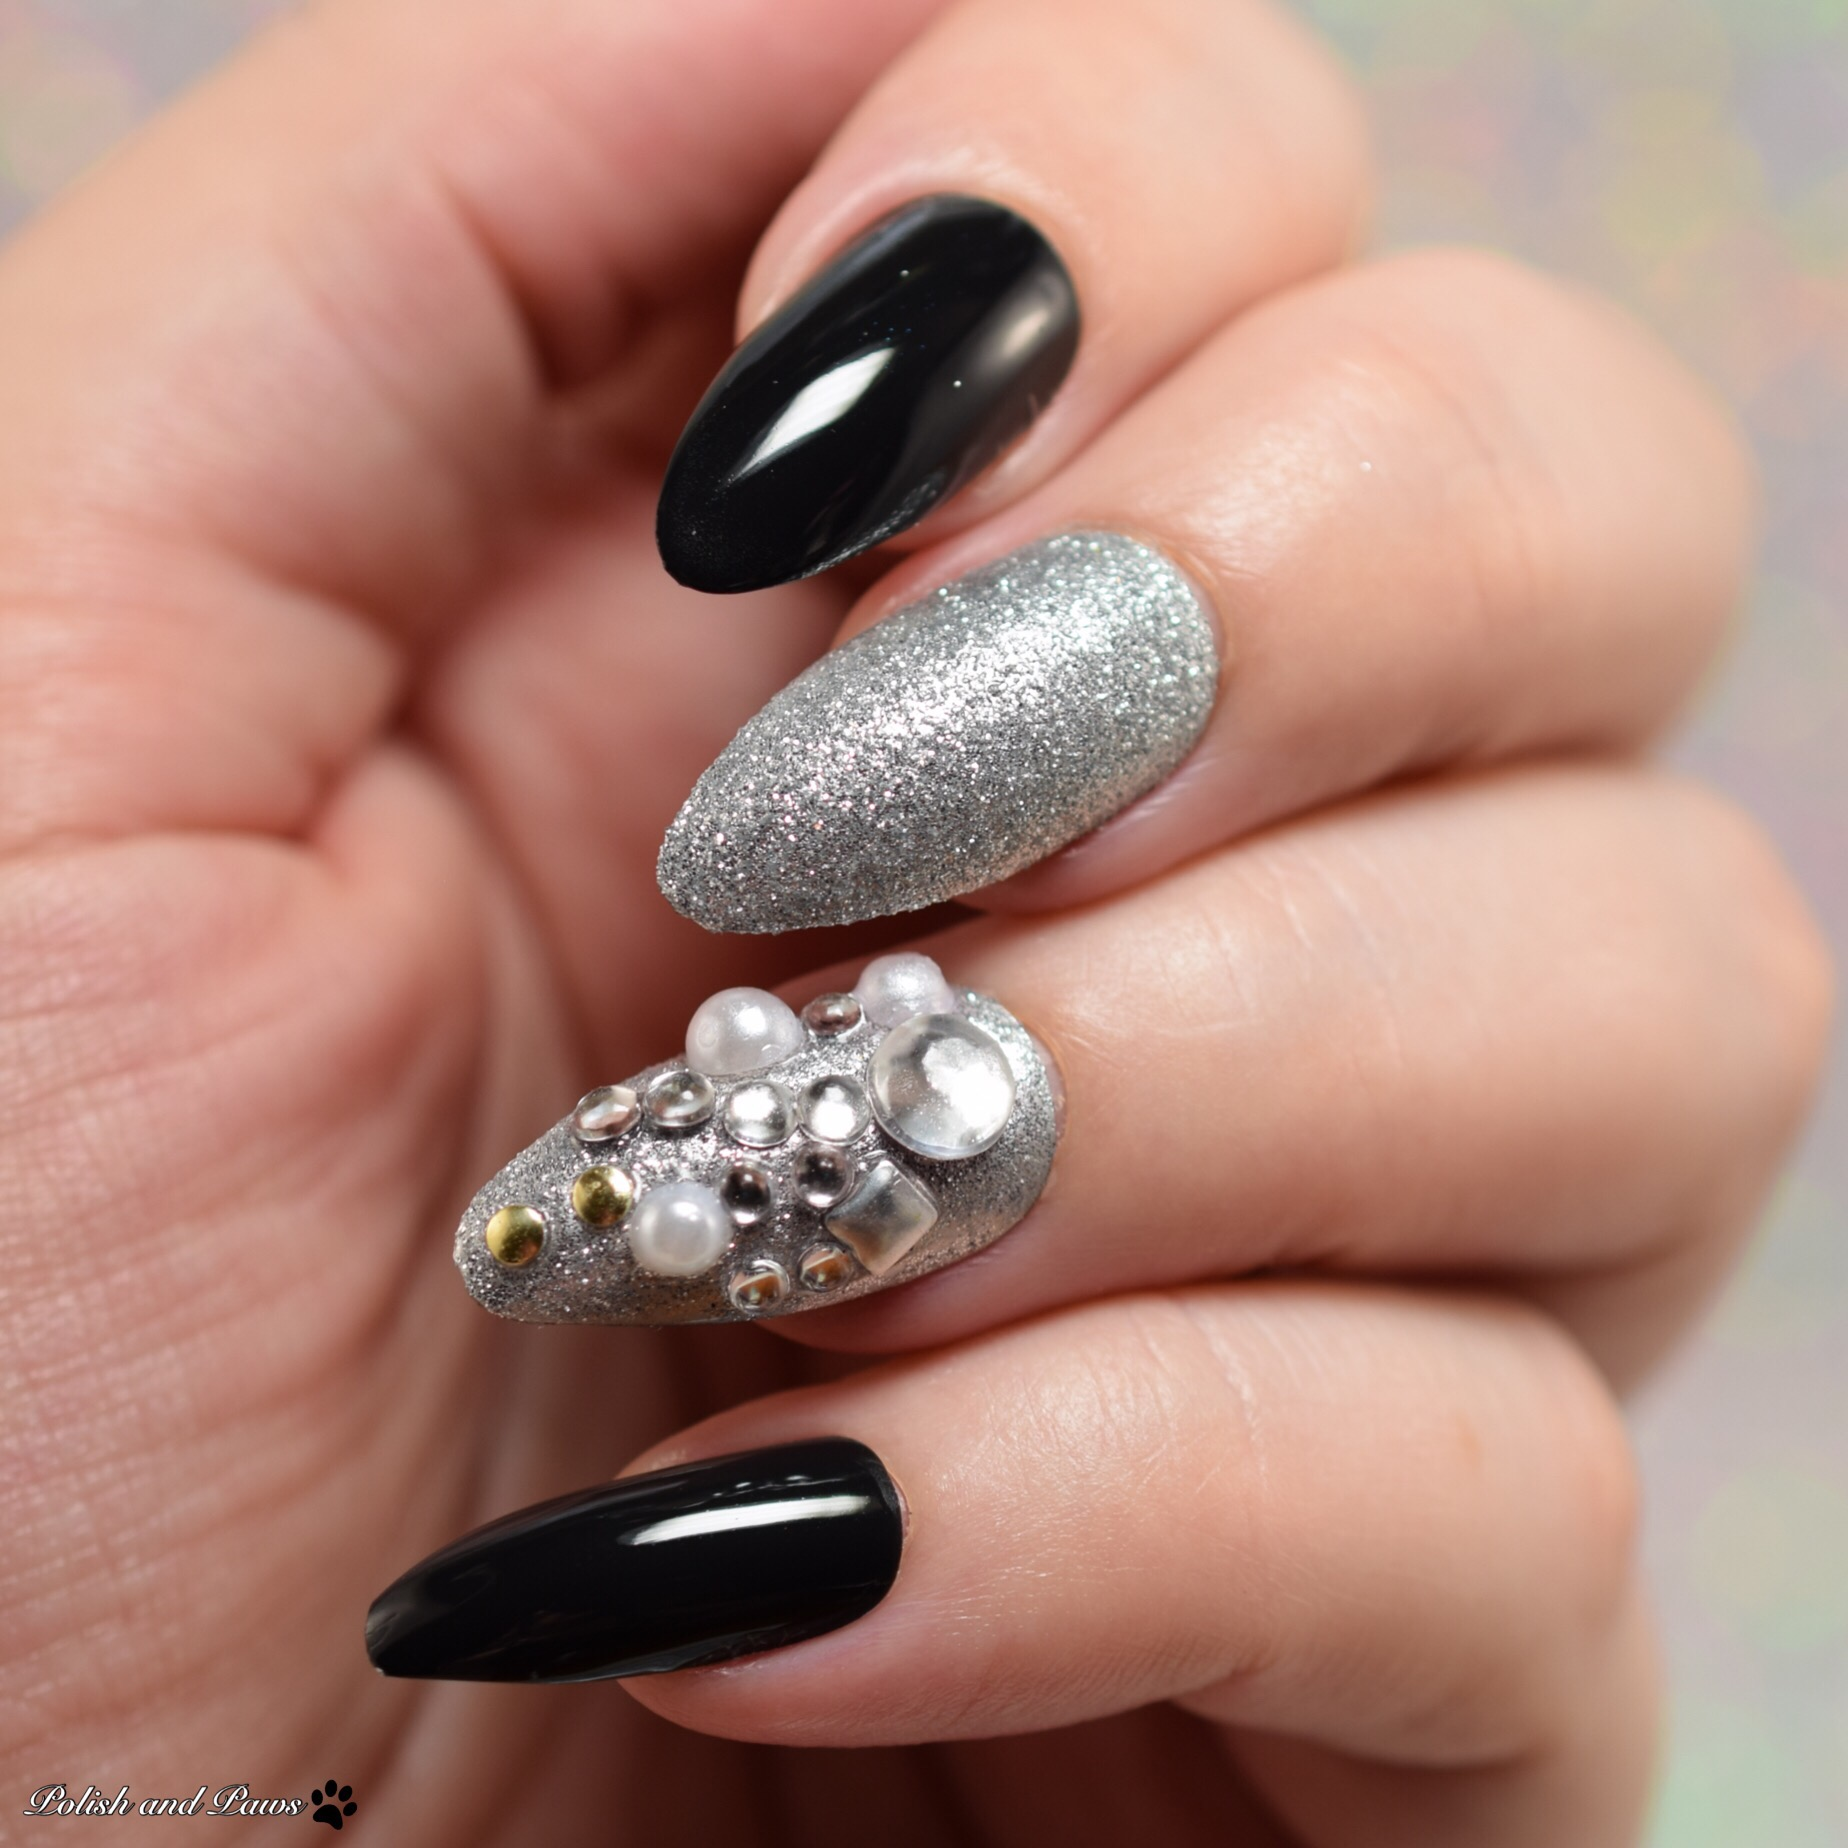 Pretty Woman Nyc Designer Artificial Nails Polish And Paws